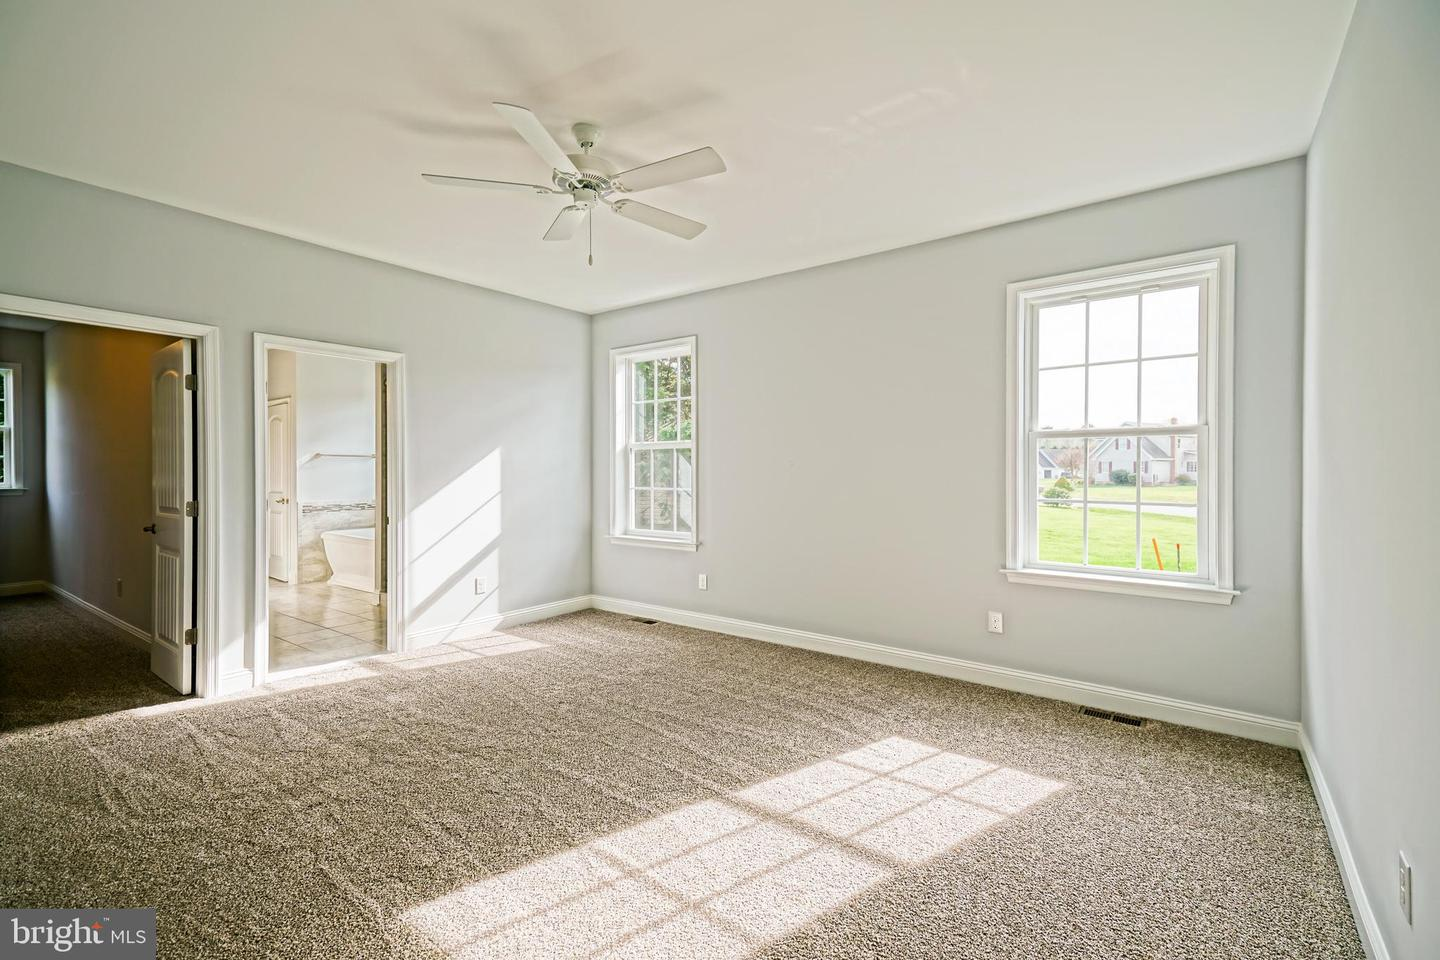 DESU142224-301790715817-2019-08-31-14-31-20 2 Arnell Dr | Rehoboth Beach, DE Real Estate For Sale | MLS# Desu142224  - Lee Ann Group